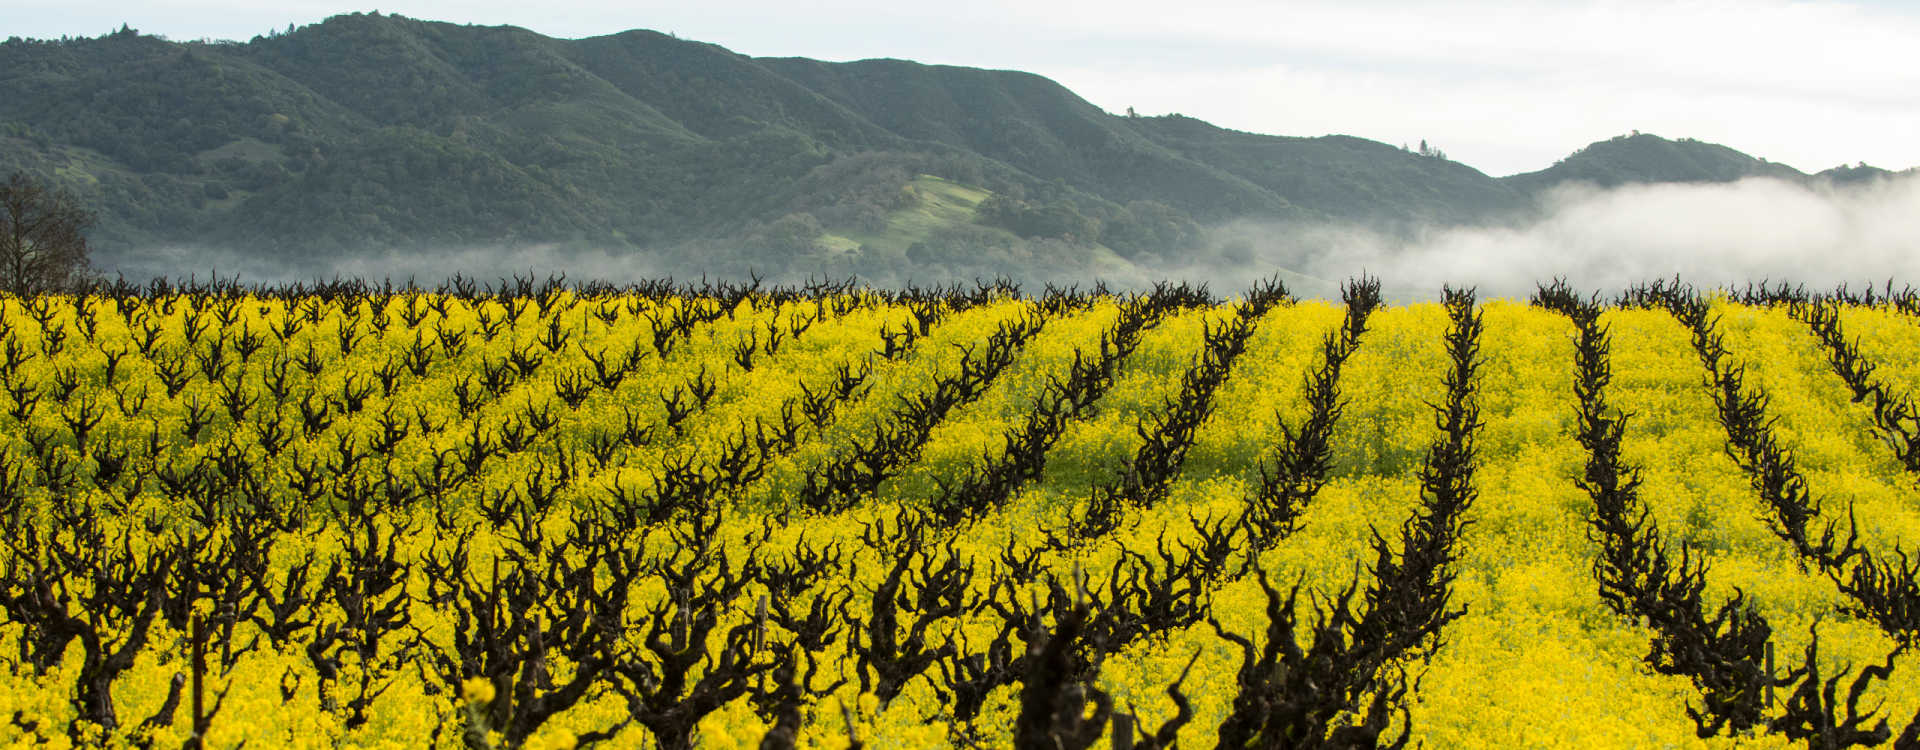 Image for California Wine U.S. content section